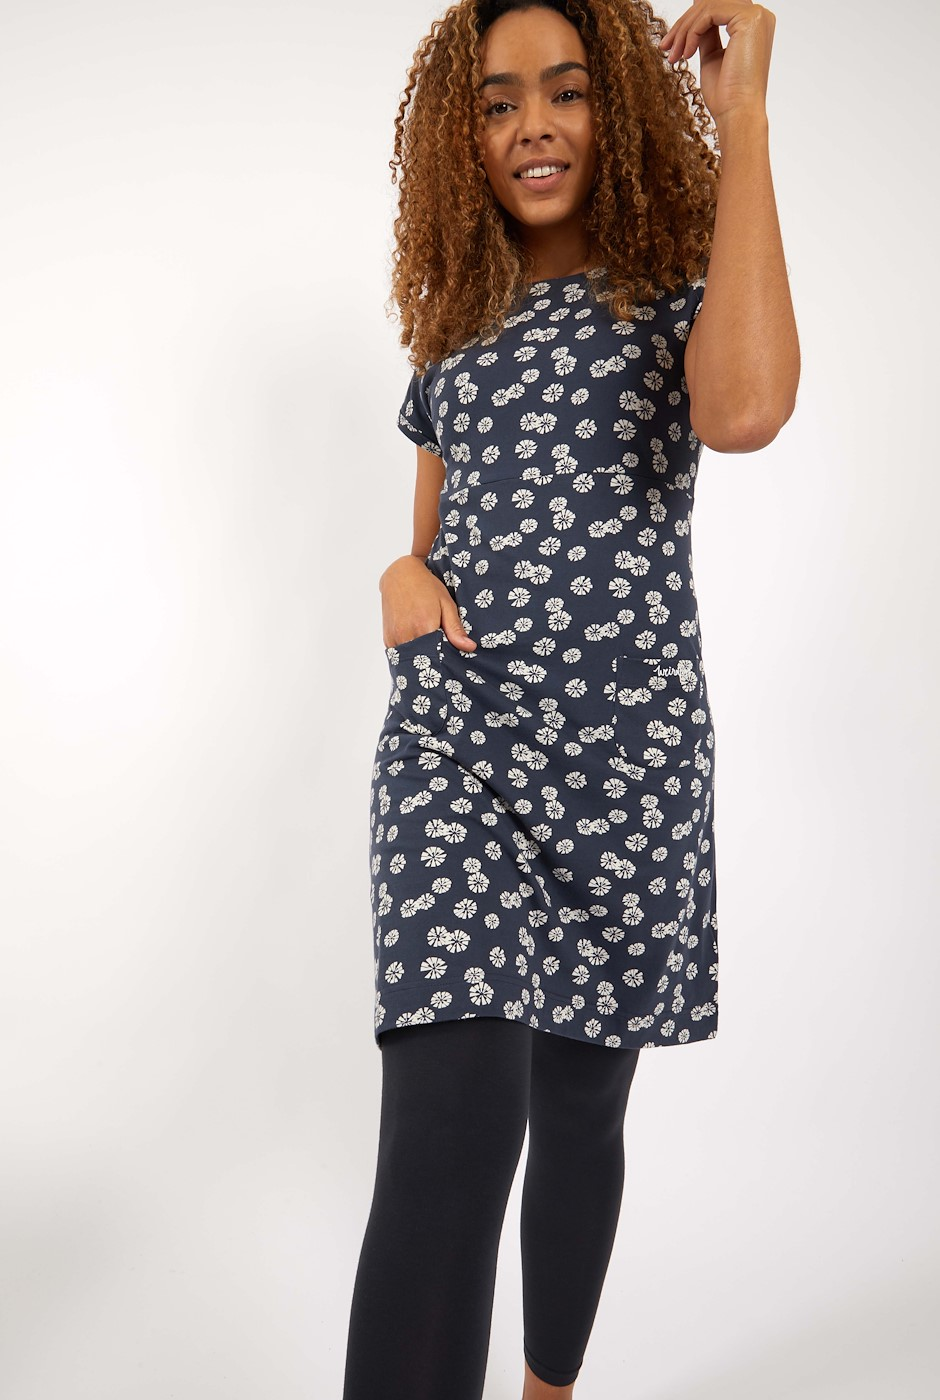 Tallahassee Organic Cotton Printed Jersey Dress Navy